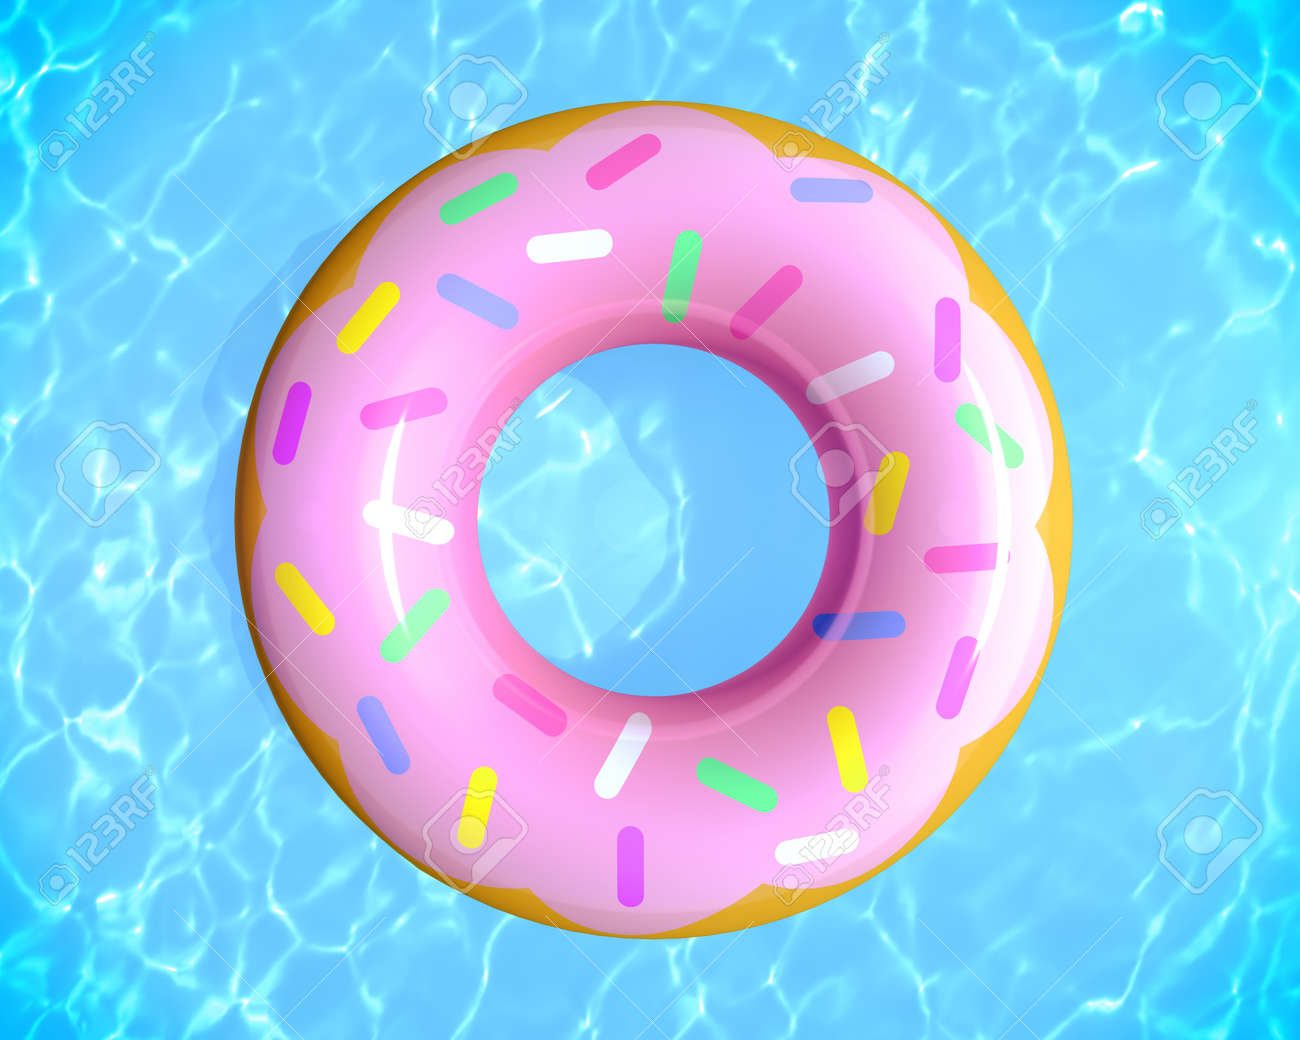 Top view of summer pool party concept with rubber ring donut toy in the swimming pool, 3d rendering. - 170462133